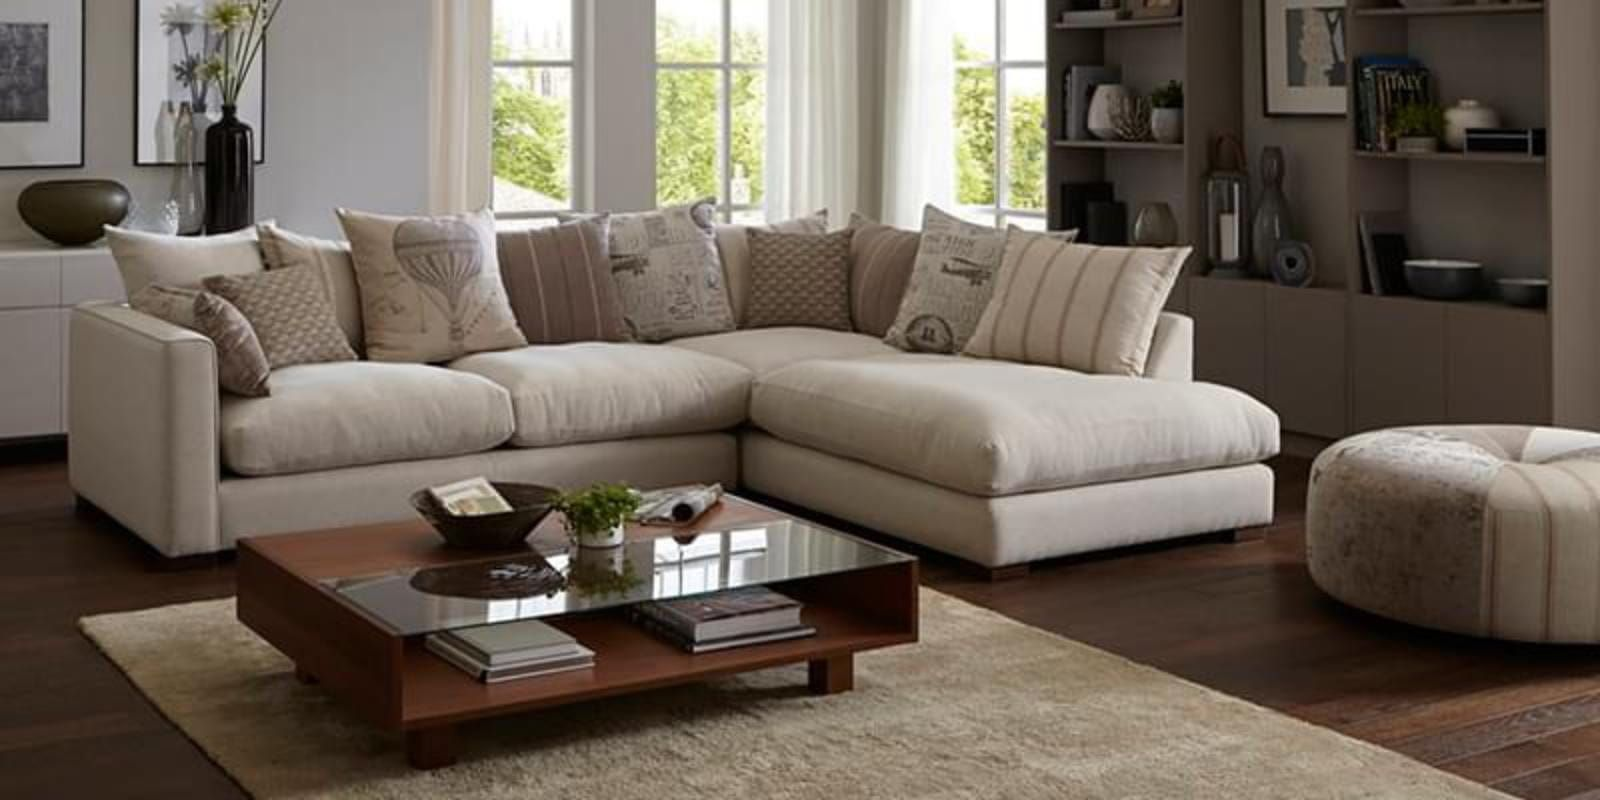 Small Living Room L Shape Sofa Variant Living In 2020 Corner Sofa Living Room Sofa Design Living Room Sofa Design